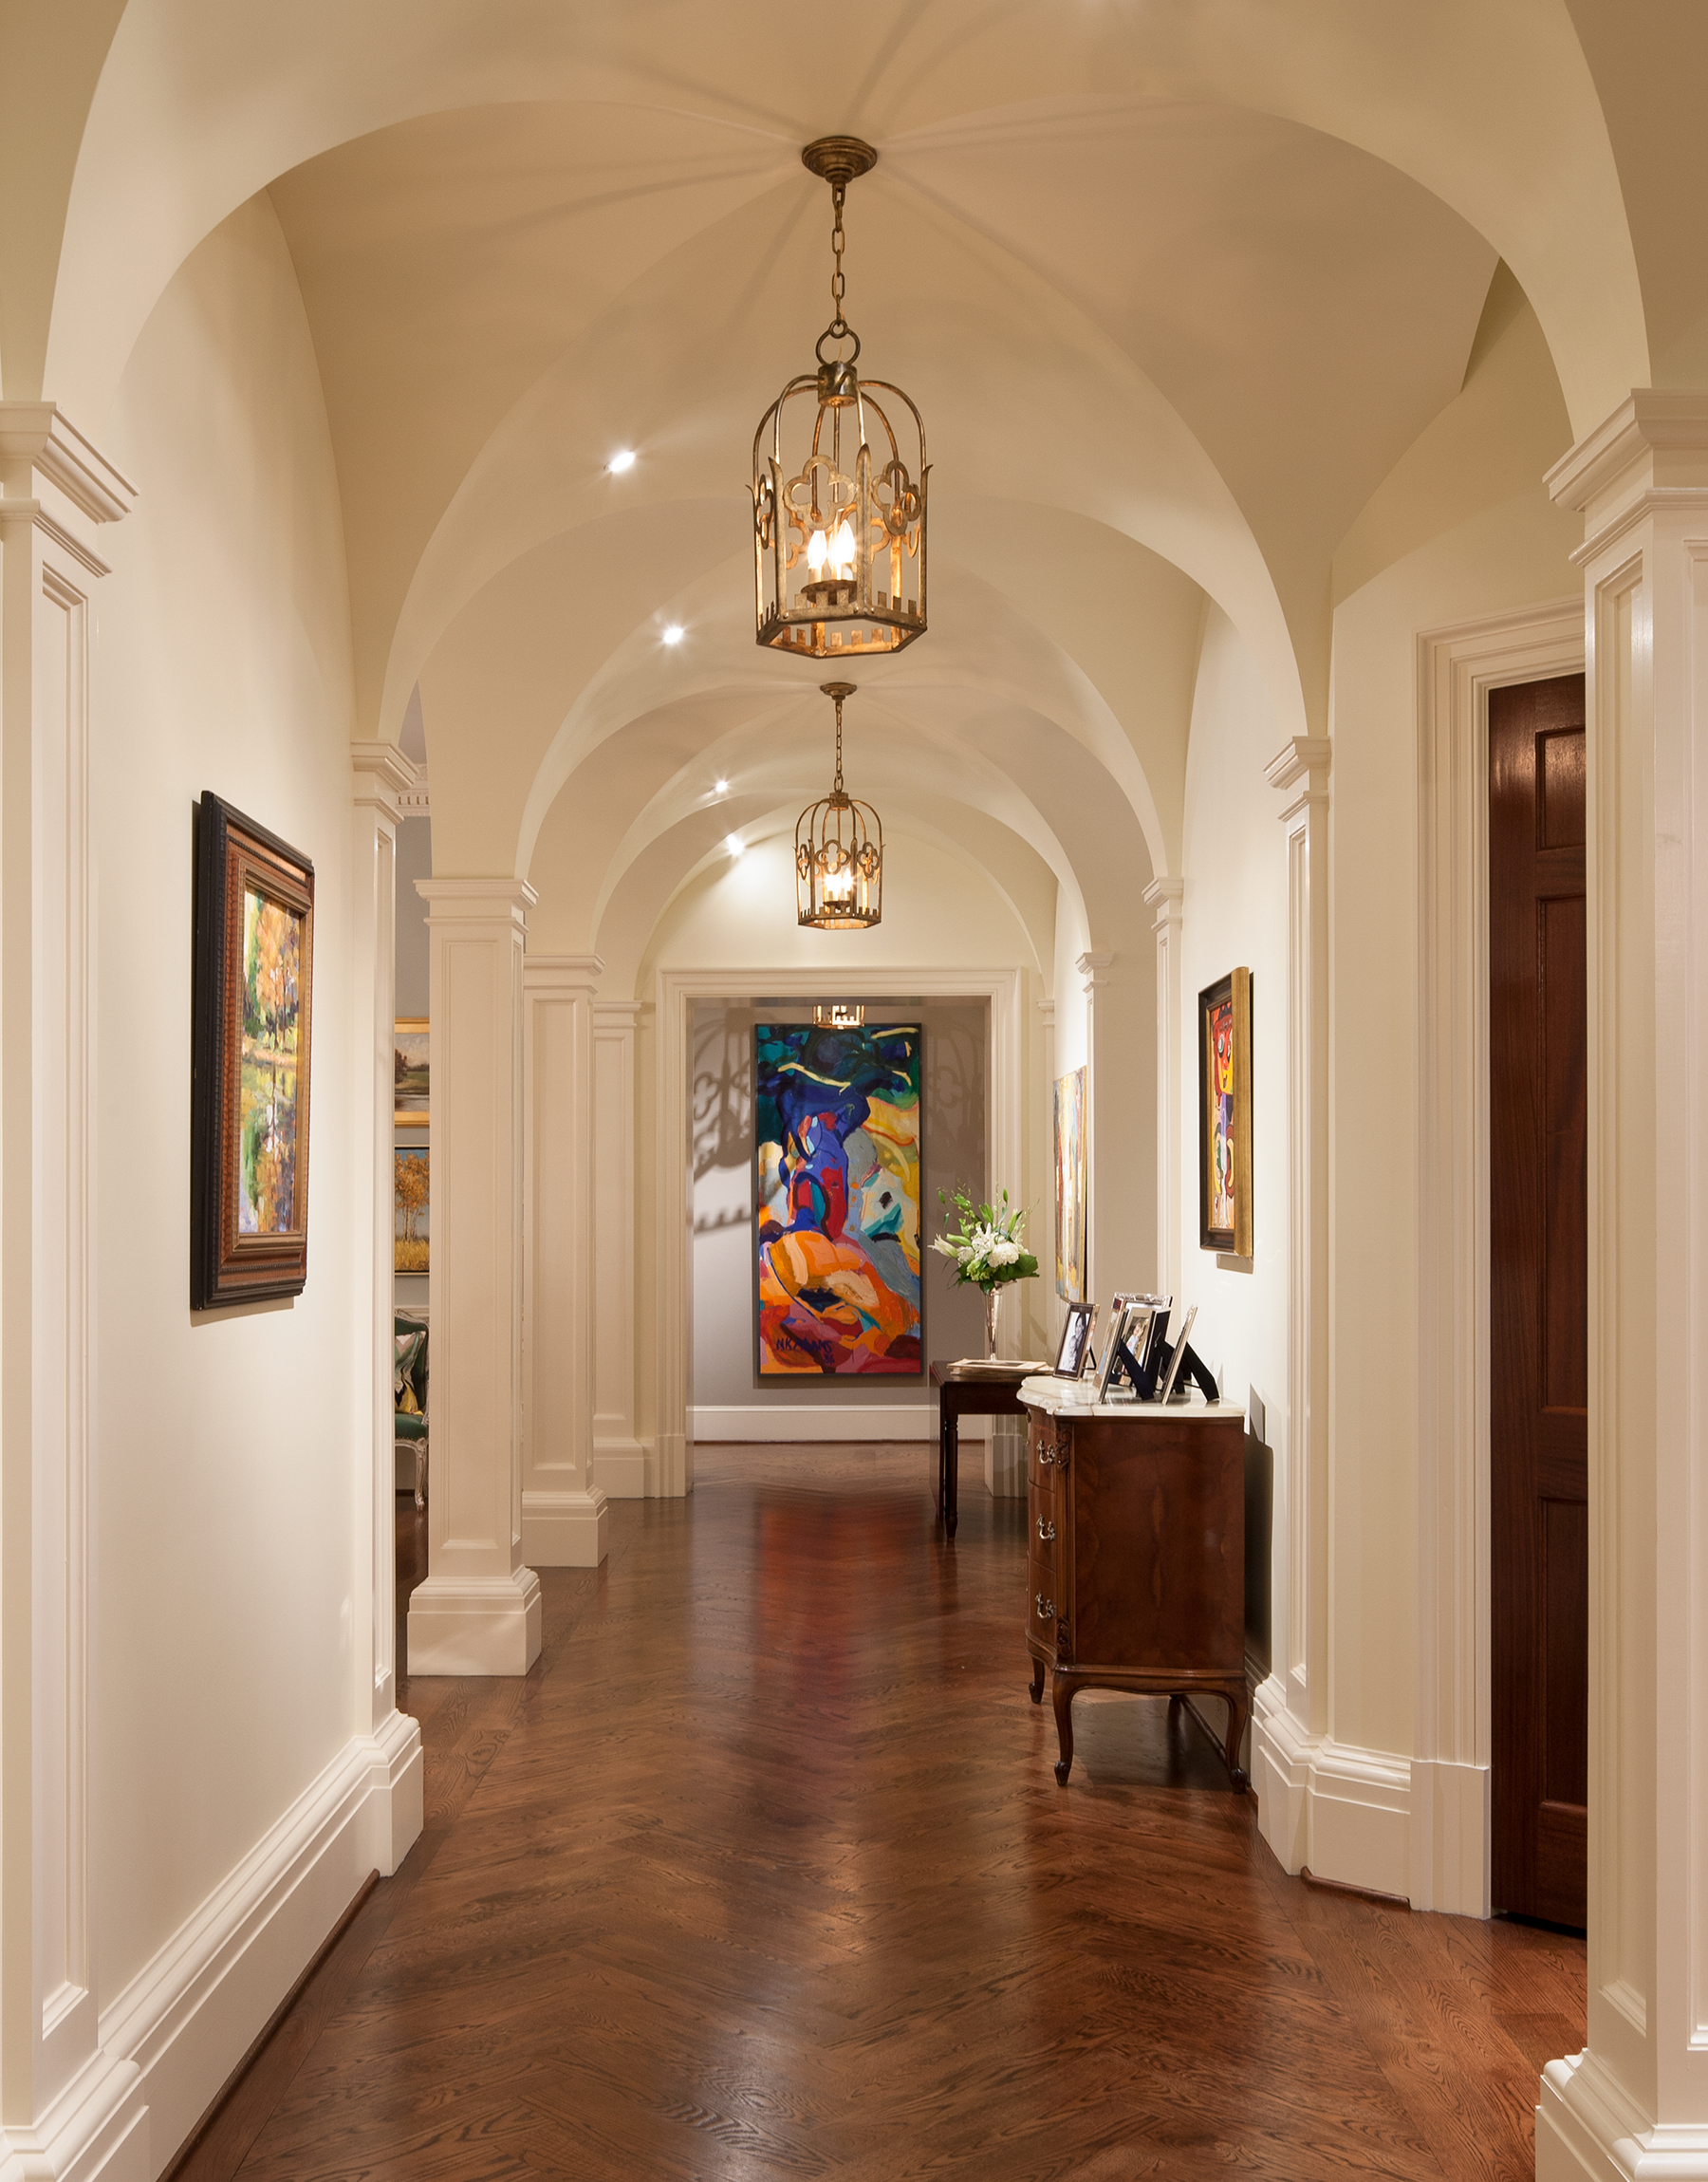 Gallery Hall, The Johnson House | William T. Baker